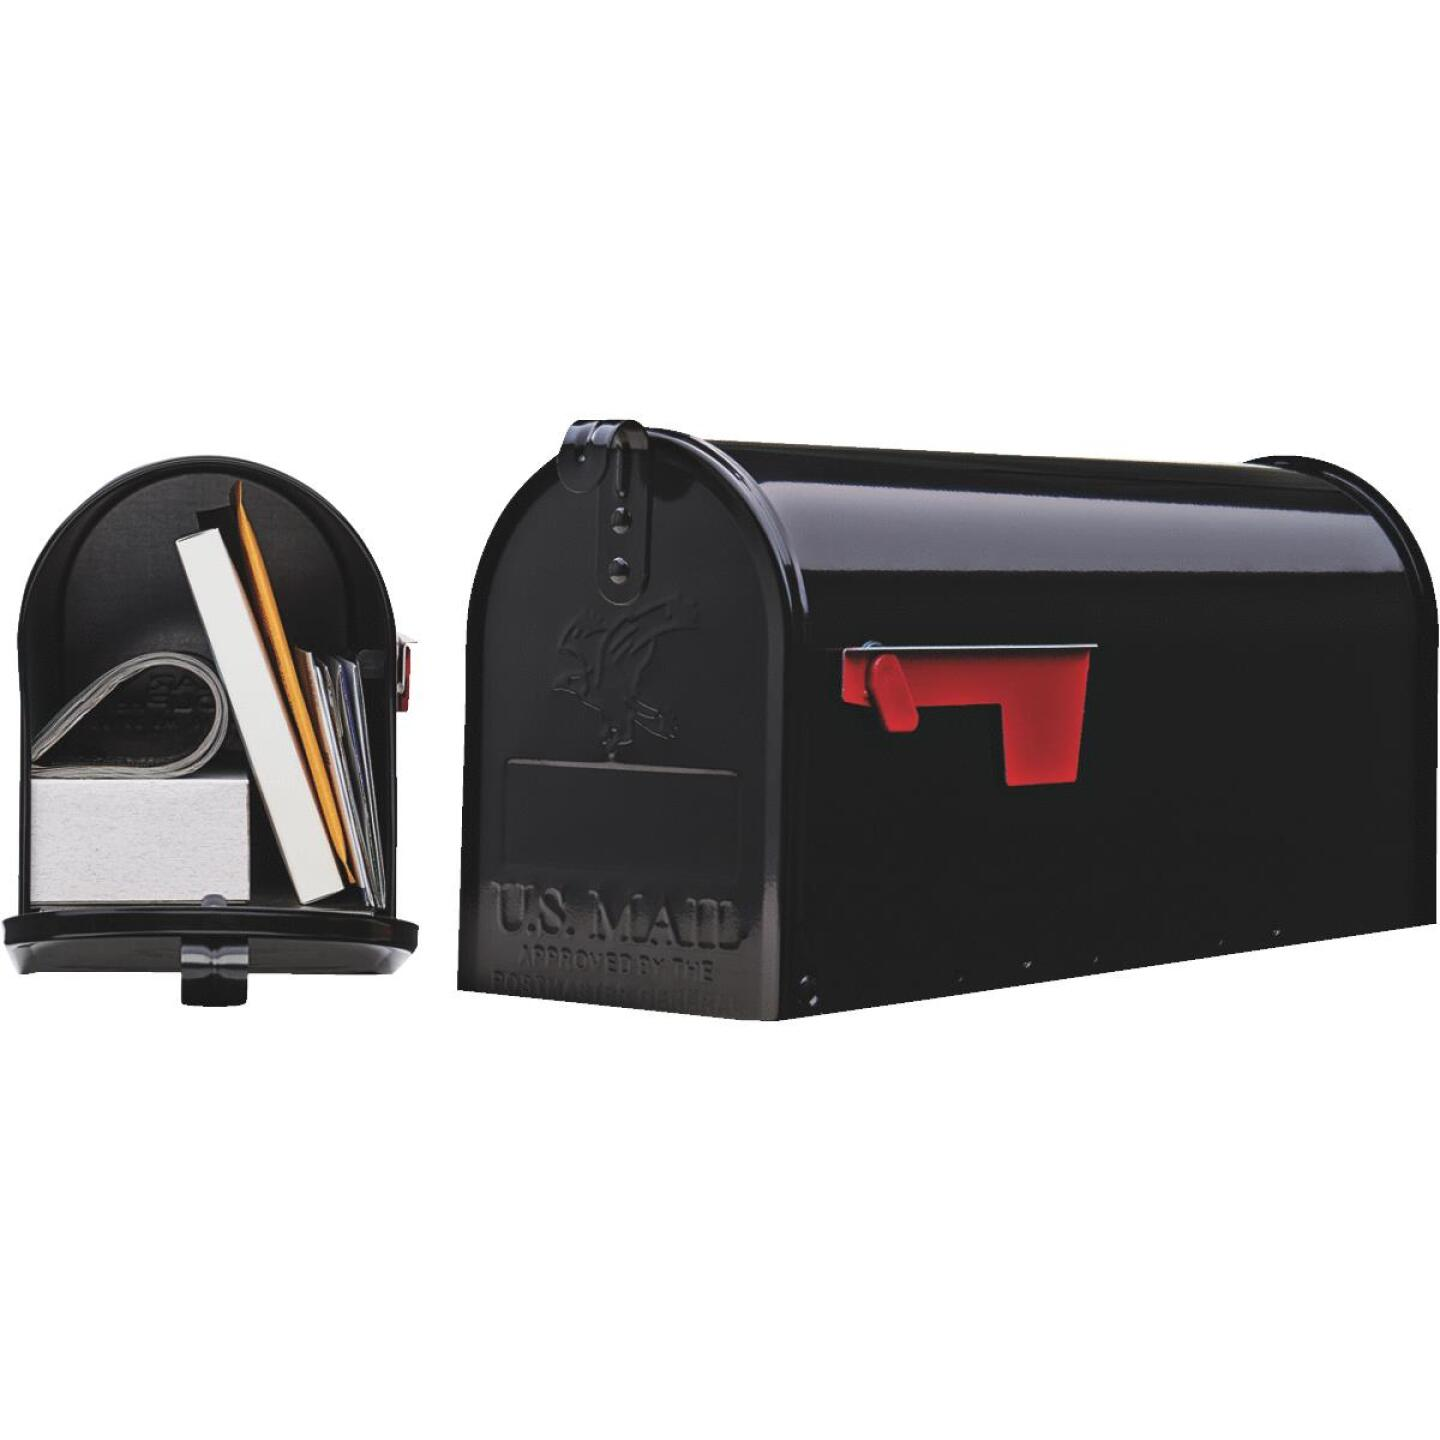 Gibraltar Elite Series T1 Black Steel Rural Post Mount Mailbox Image 1